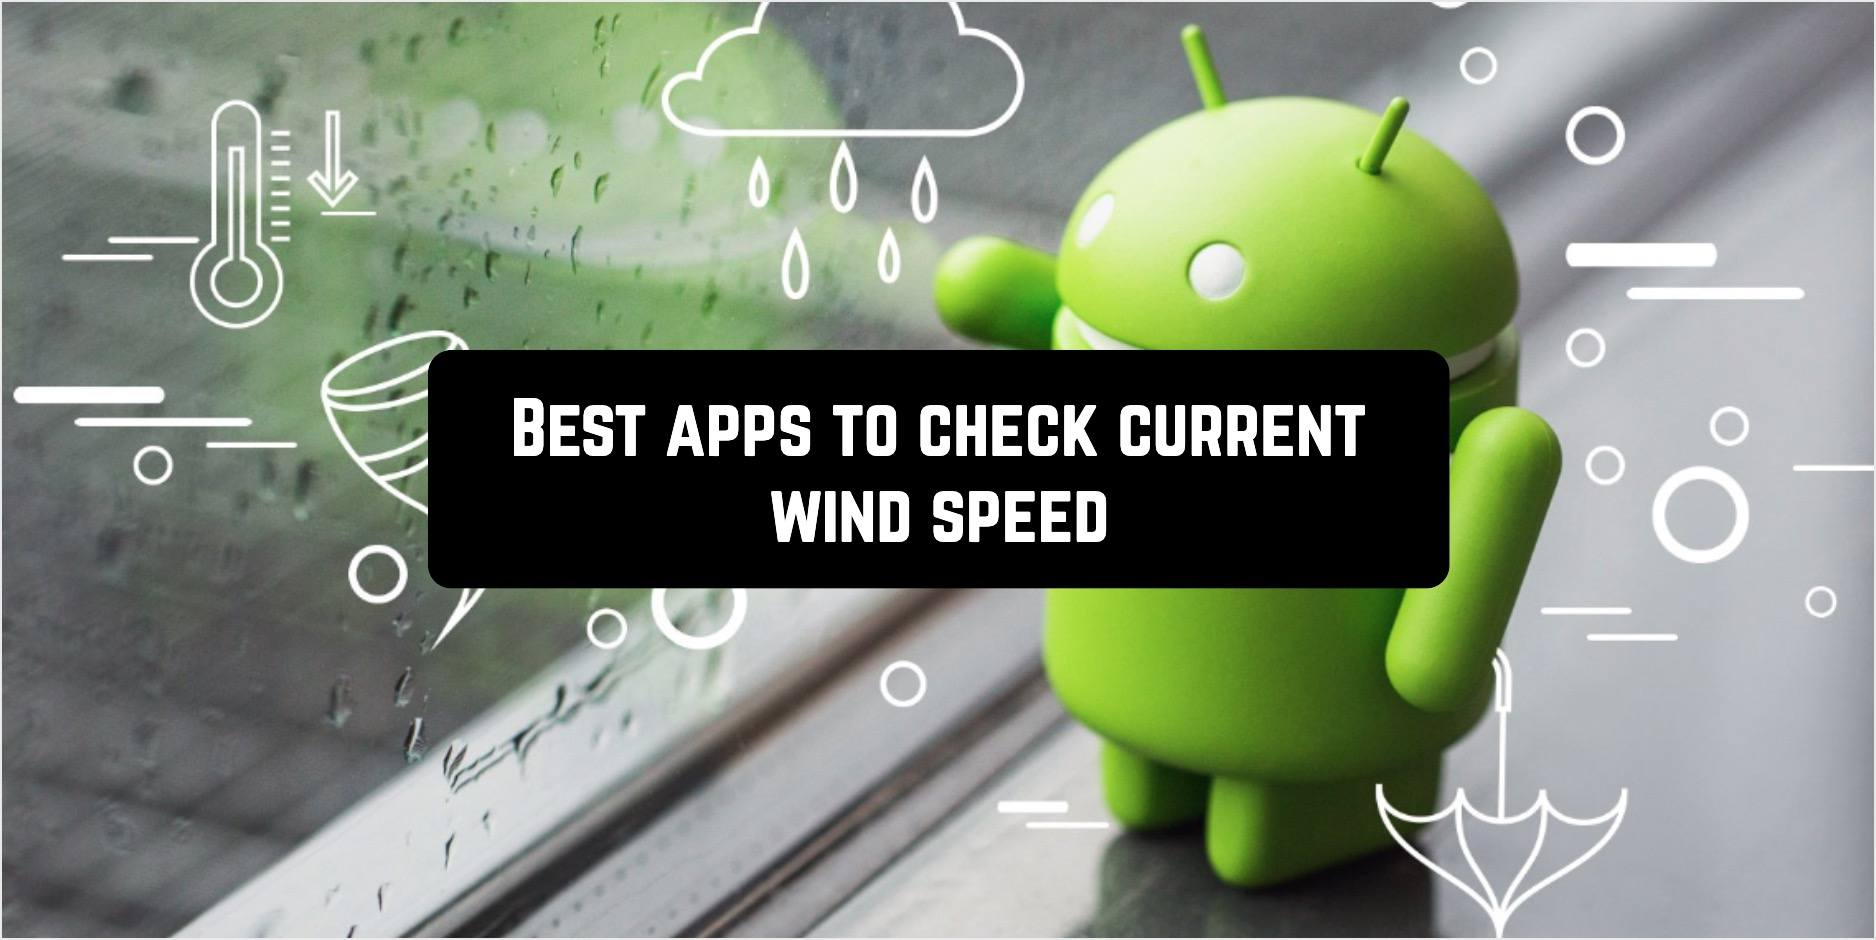 Best Android apps to check current wind speed